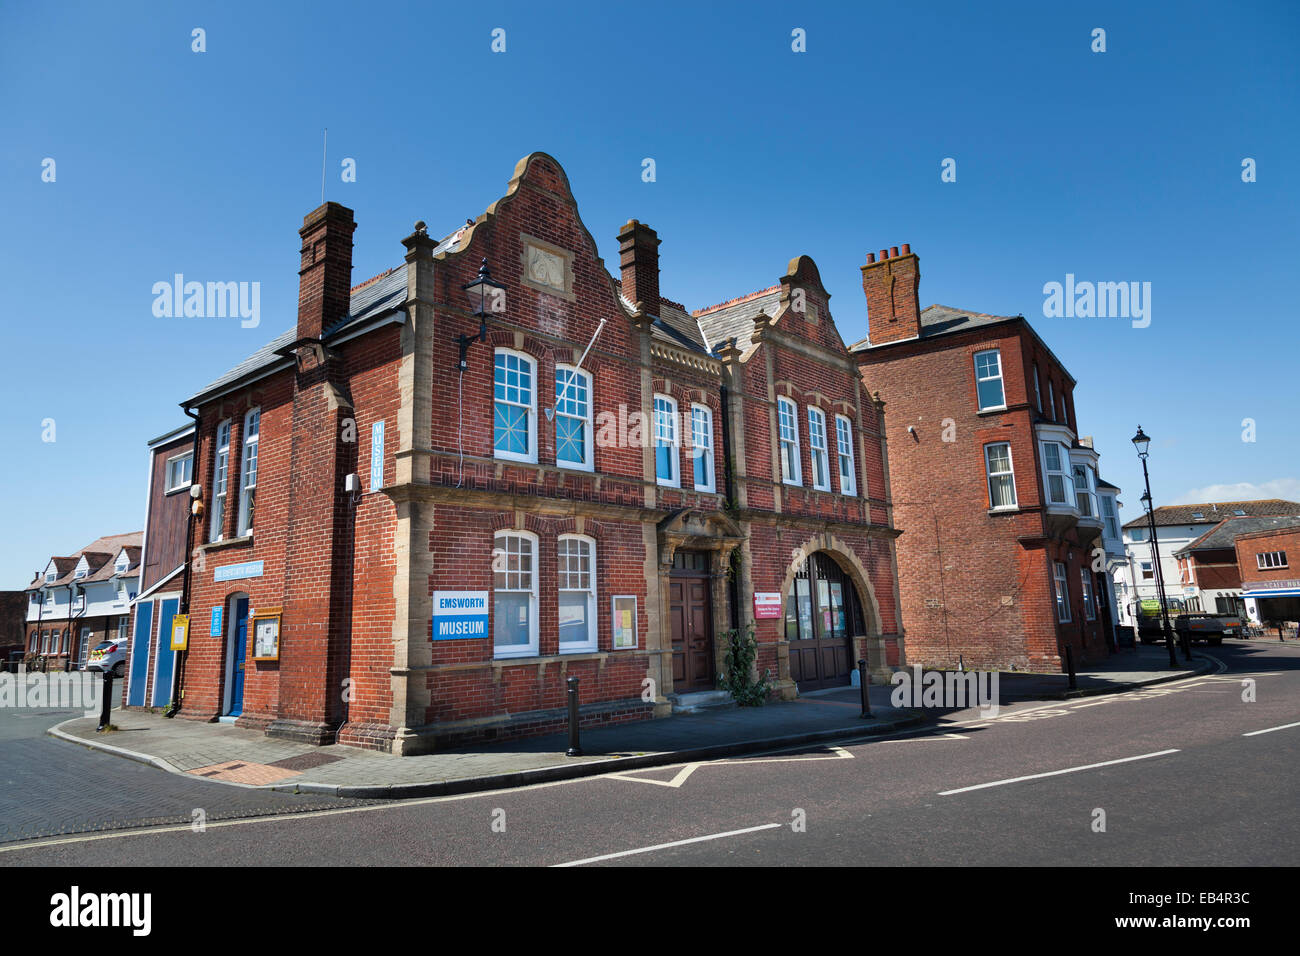 Emsworth museum and fire station exterior. Stock Photo